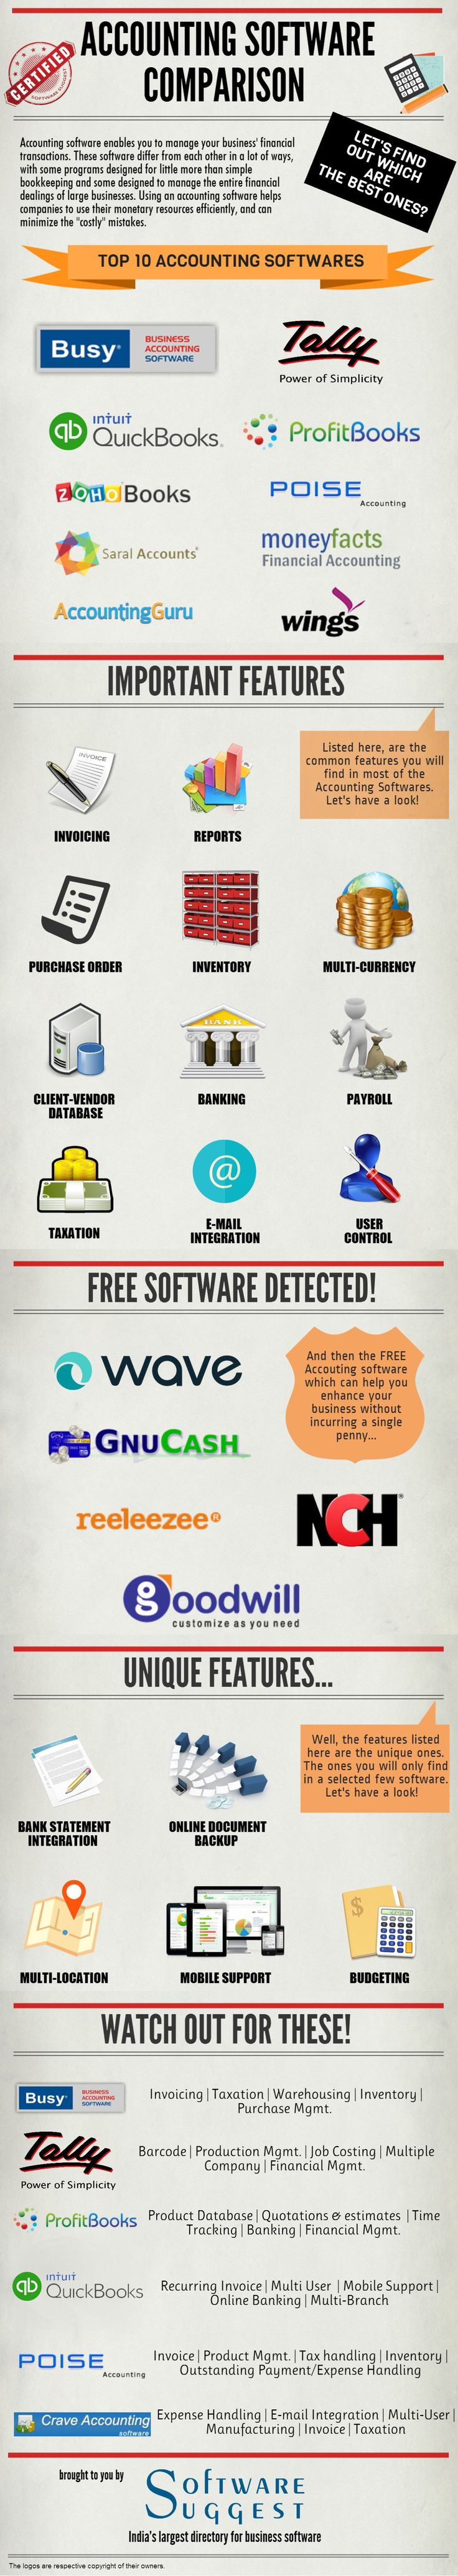 SoftwareSuggest team has done an extensive research for the Best Business Accounting Software in India.   This infographic shows the top 10  Accounting Software in India along with their important and unique features.   Also go through a list of Free Business Accounting Software which helps your SME to kick-start without a penny.